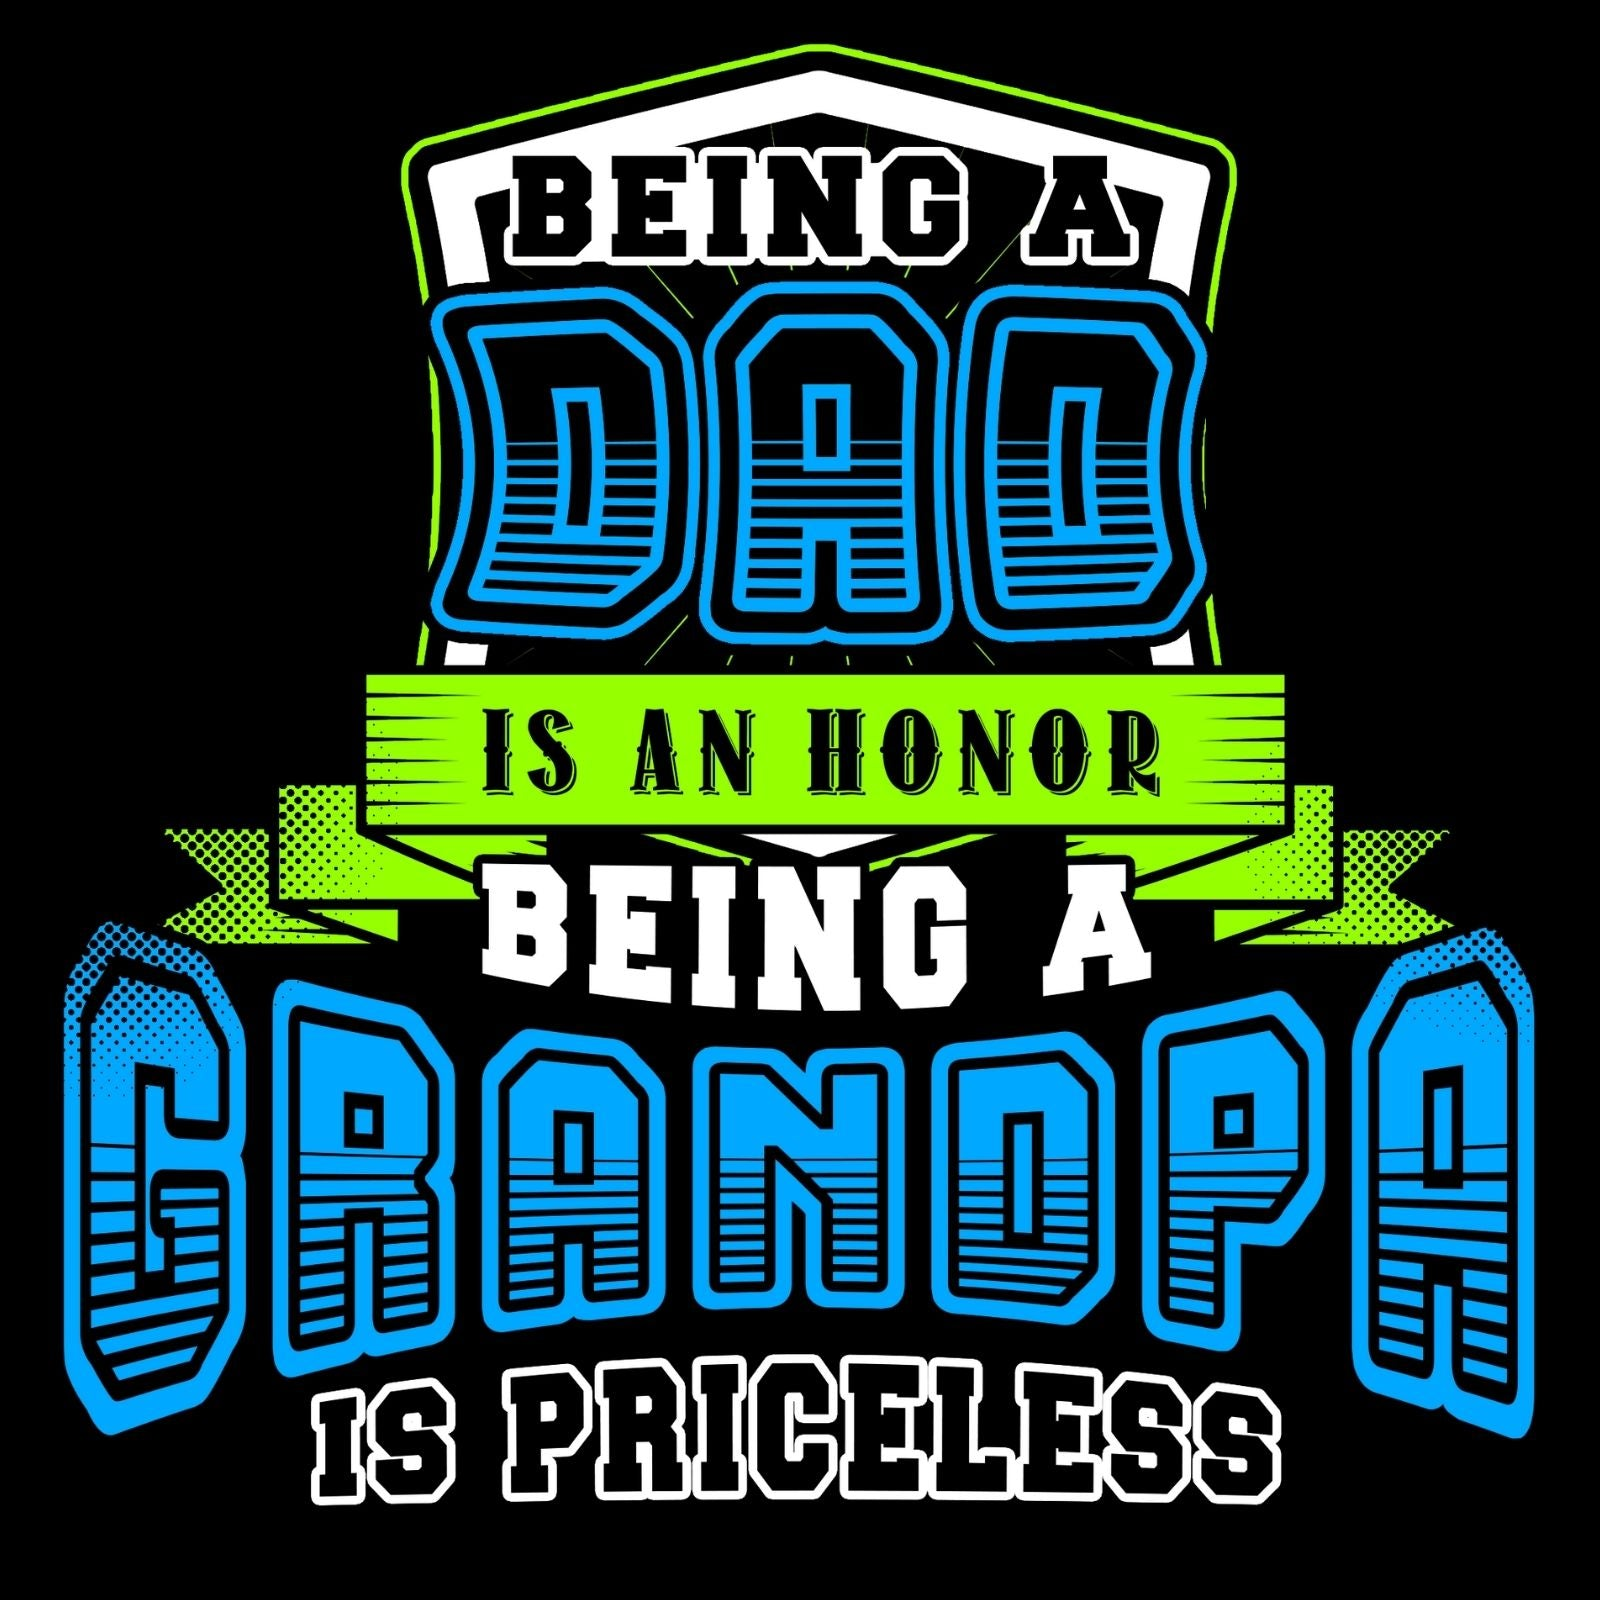 Being A Dad Is An Honor Being A Grandpa Is Priceless - Bastard Graphics